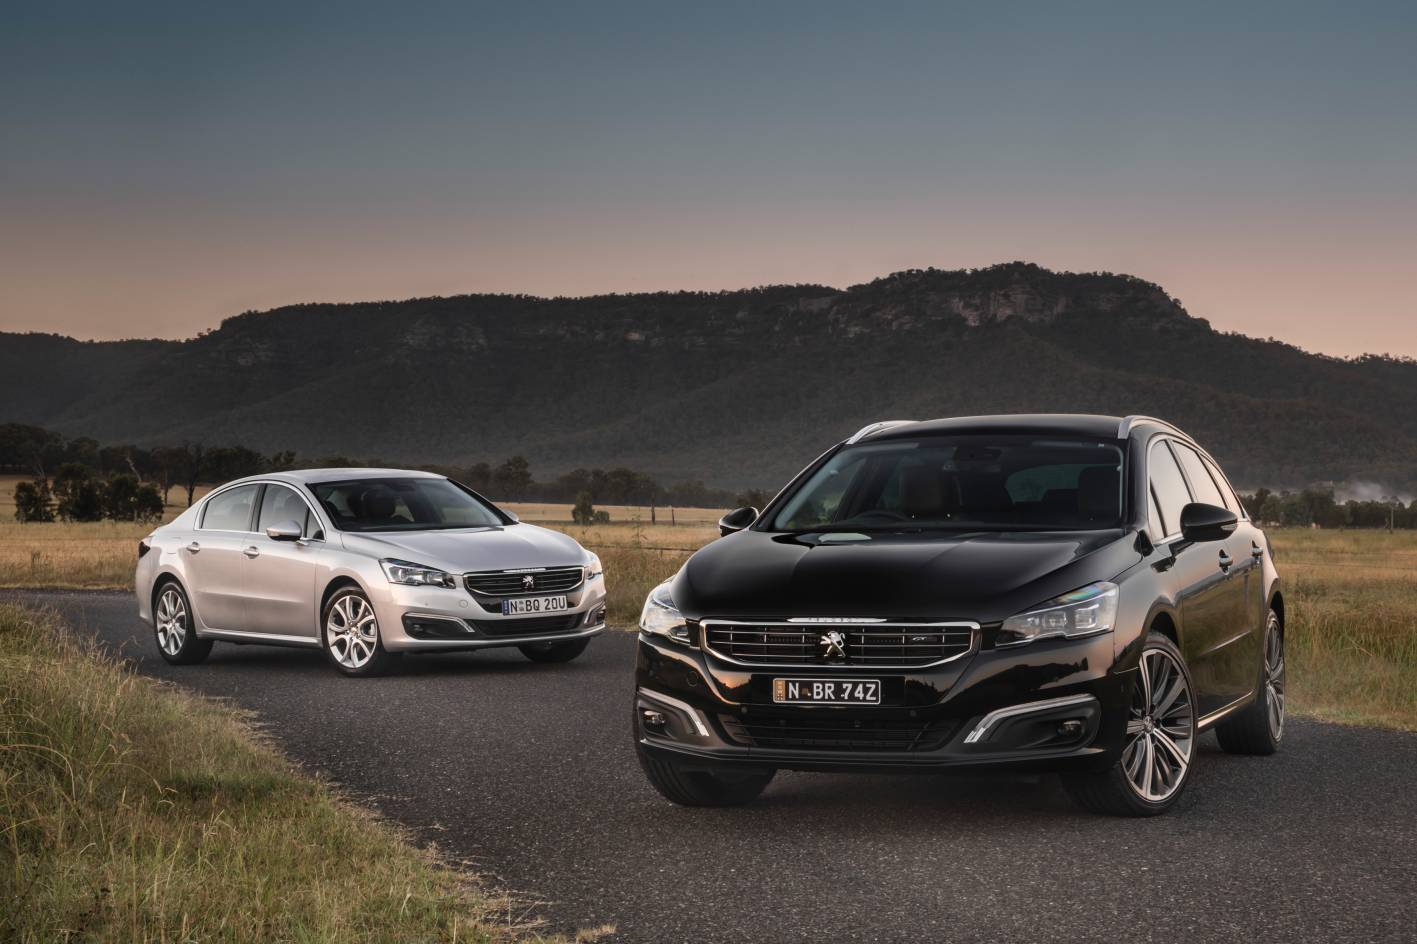 News 2015 Peugeot 508 Gets Driveaway Prices